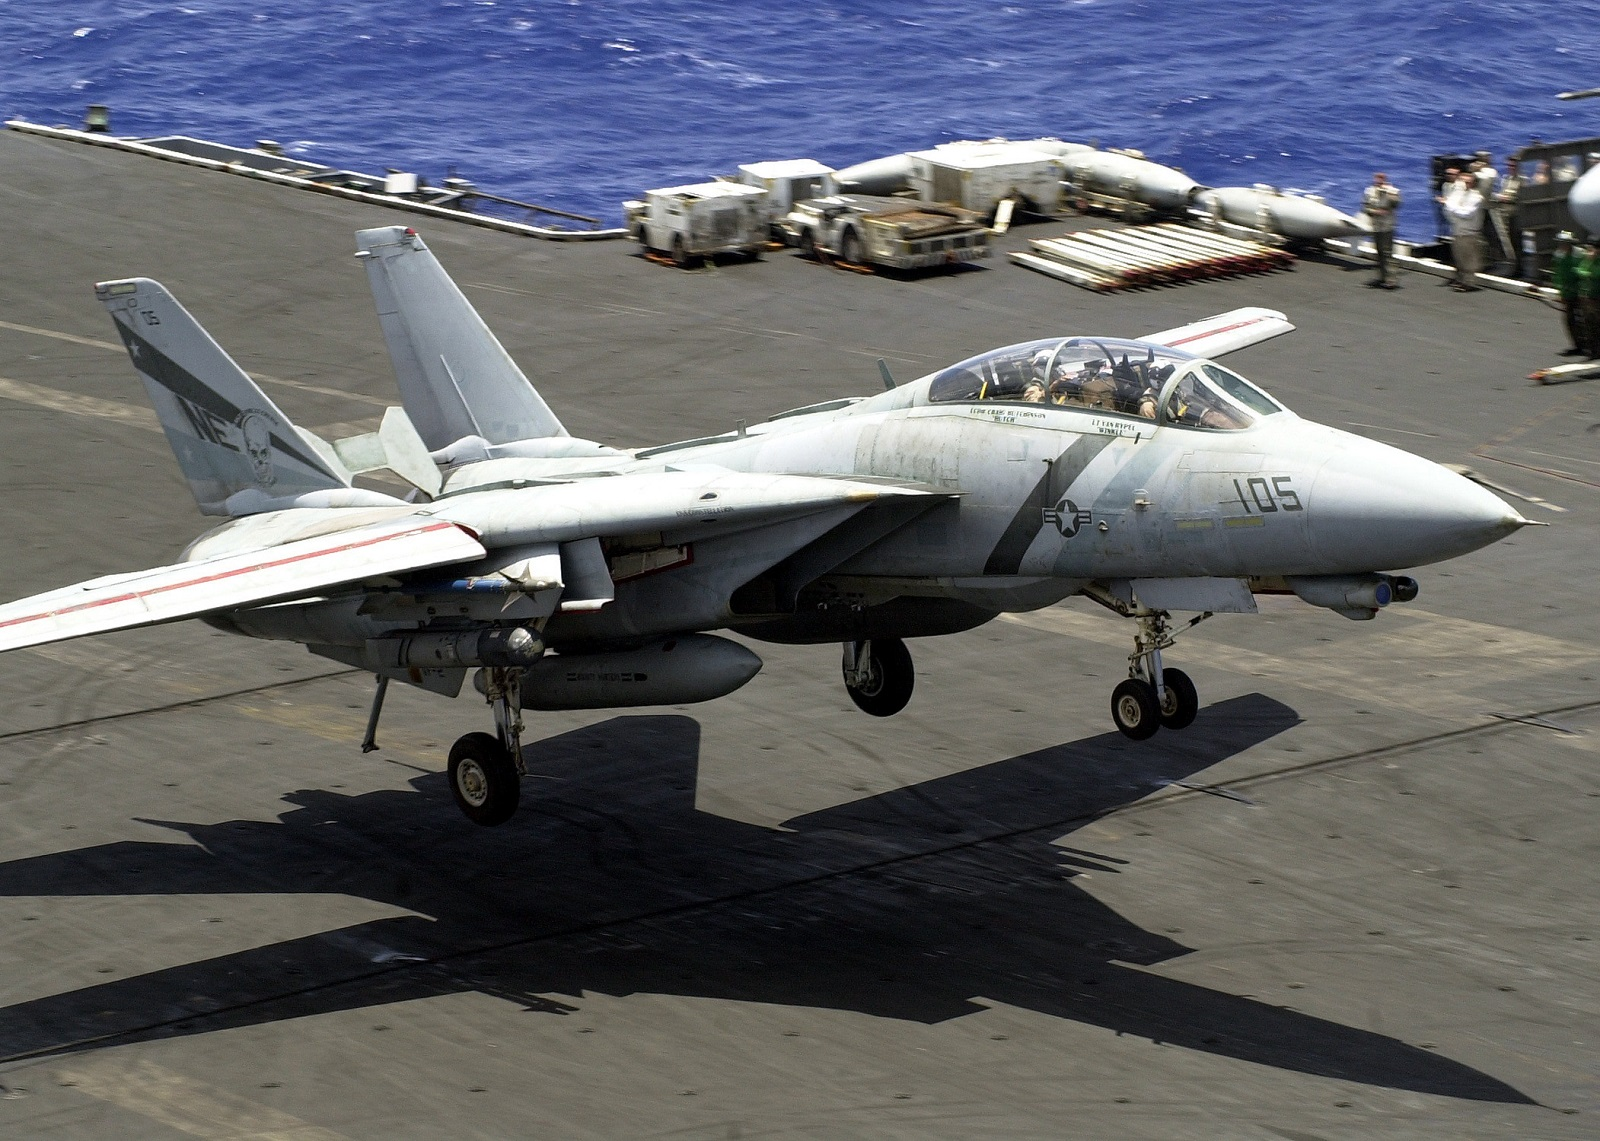 Forget the F-14 Tomcats: China's Navy Just Released Their Very Own Version of Top Gun (Sort Of)